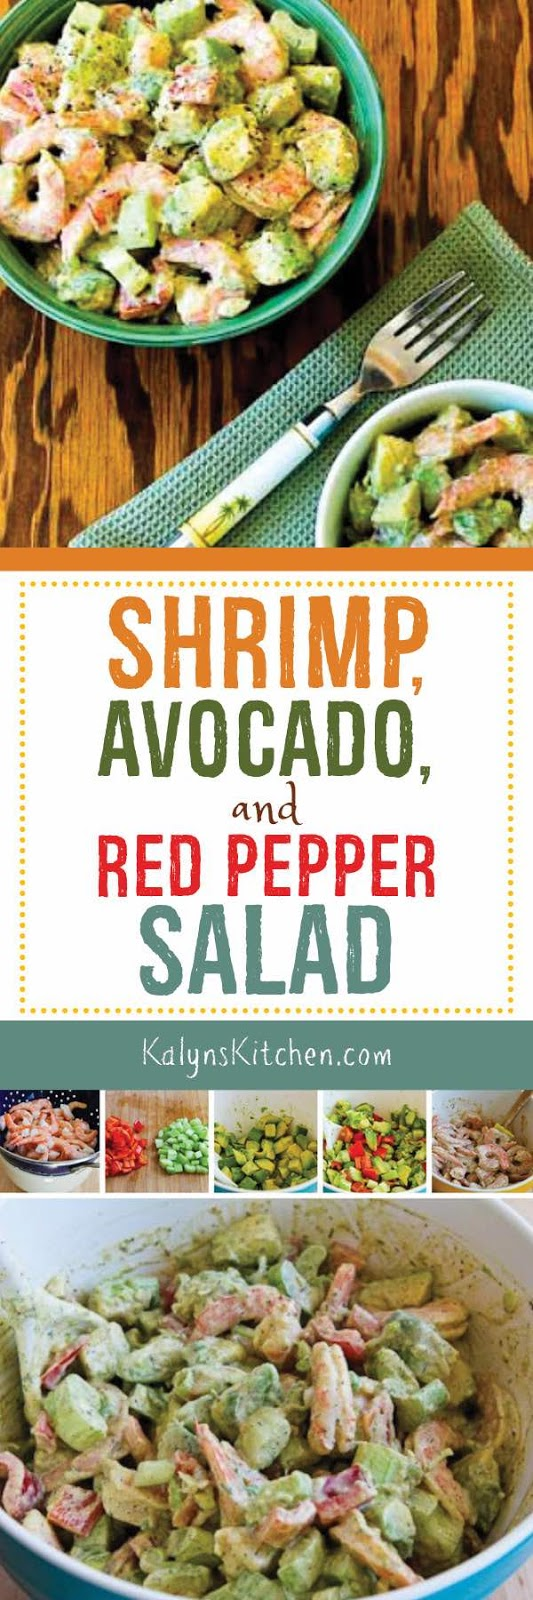 Shrimp, Avocado, and Red Pepper Salad - Kalyn's Kitchen